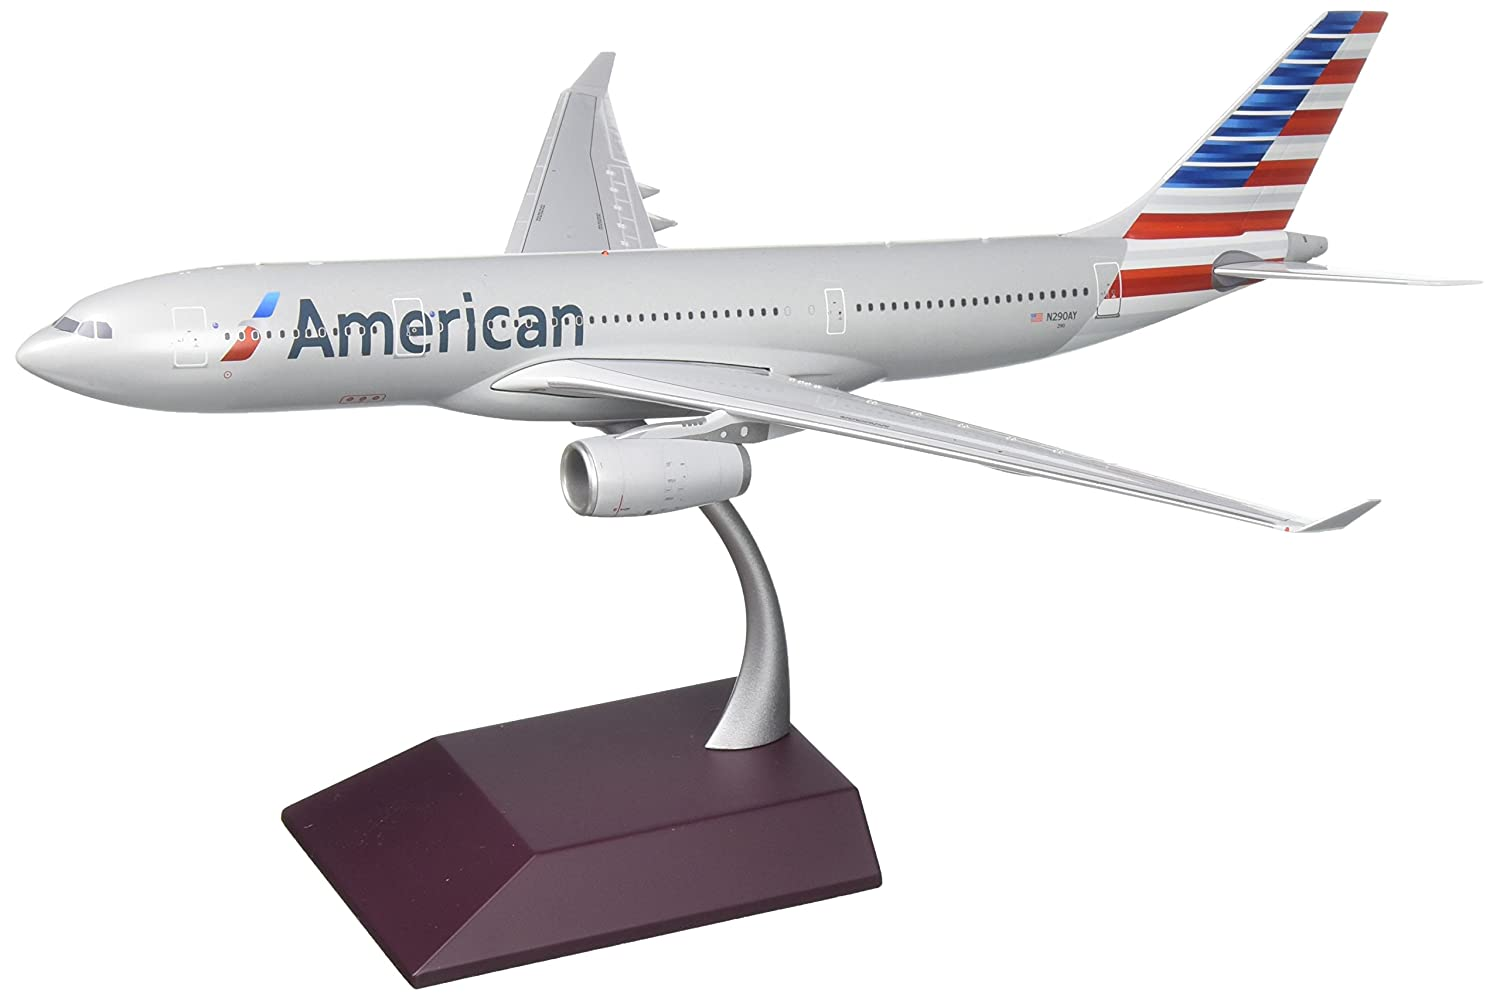 GeminiJets American Airlines Airbus A330-200 Diecast Airplane Model N290AY With Stand 1:200 Scale Part# G2AAL630